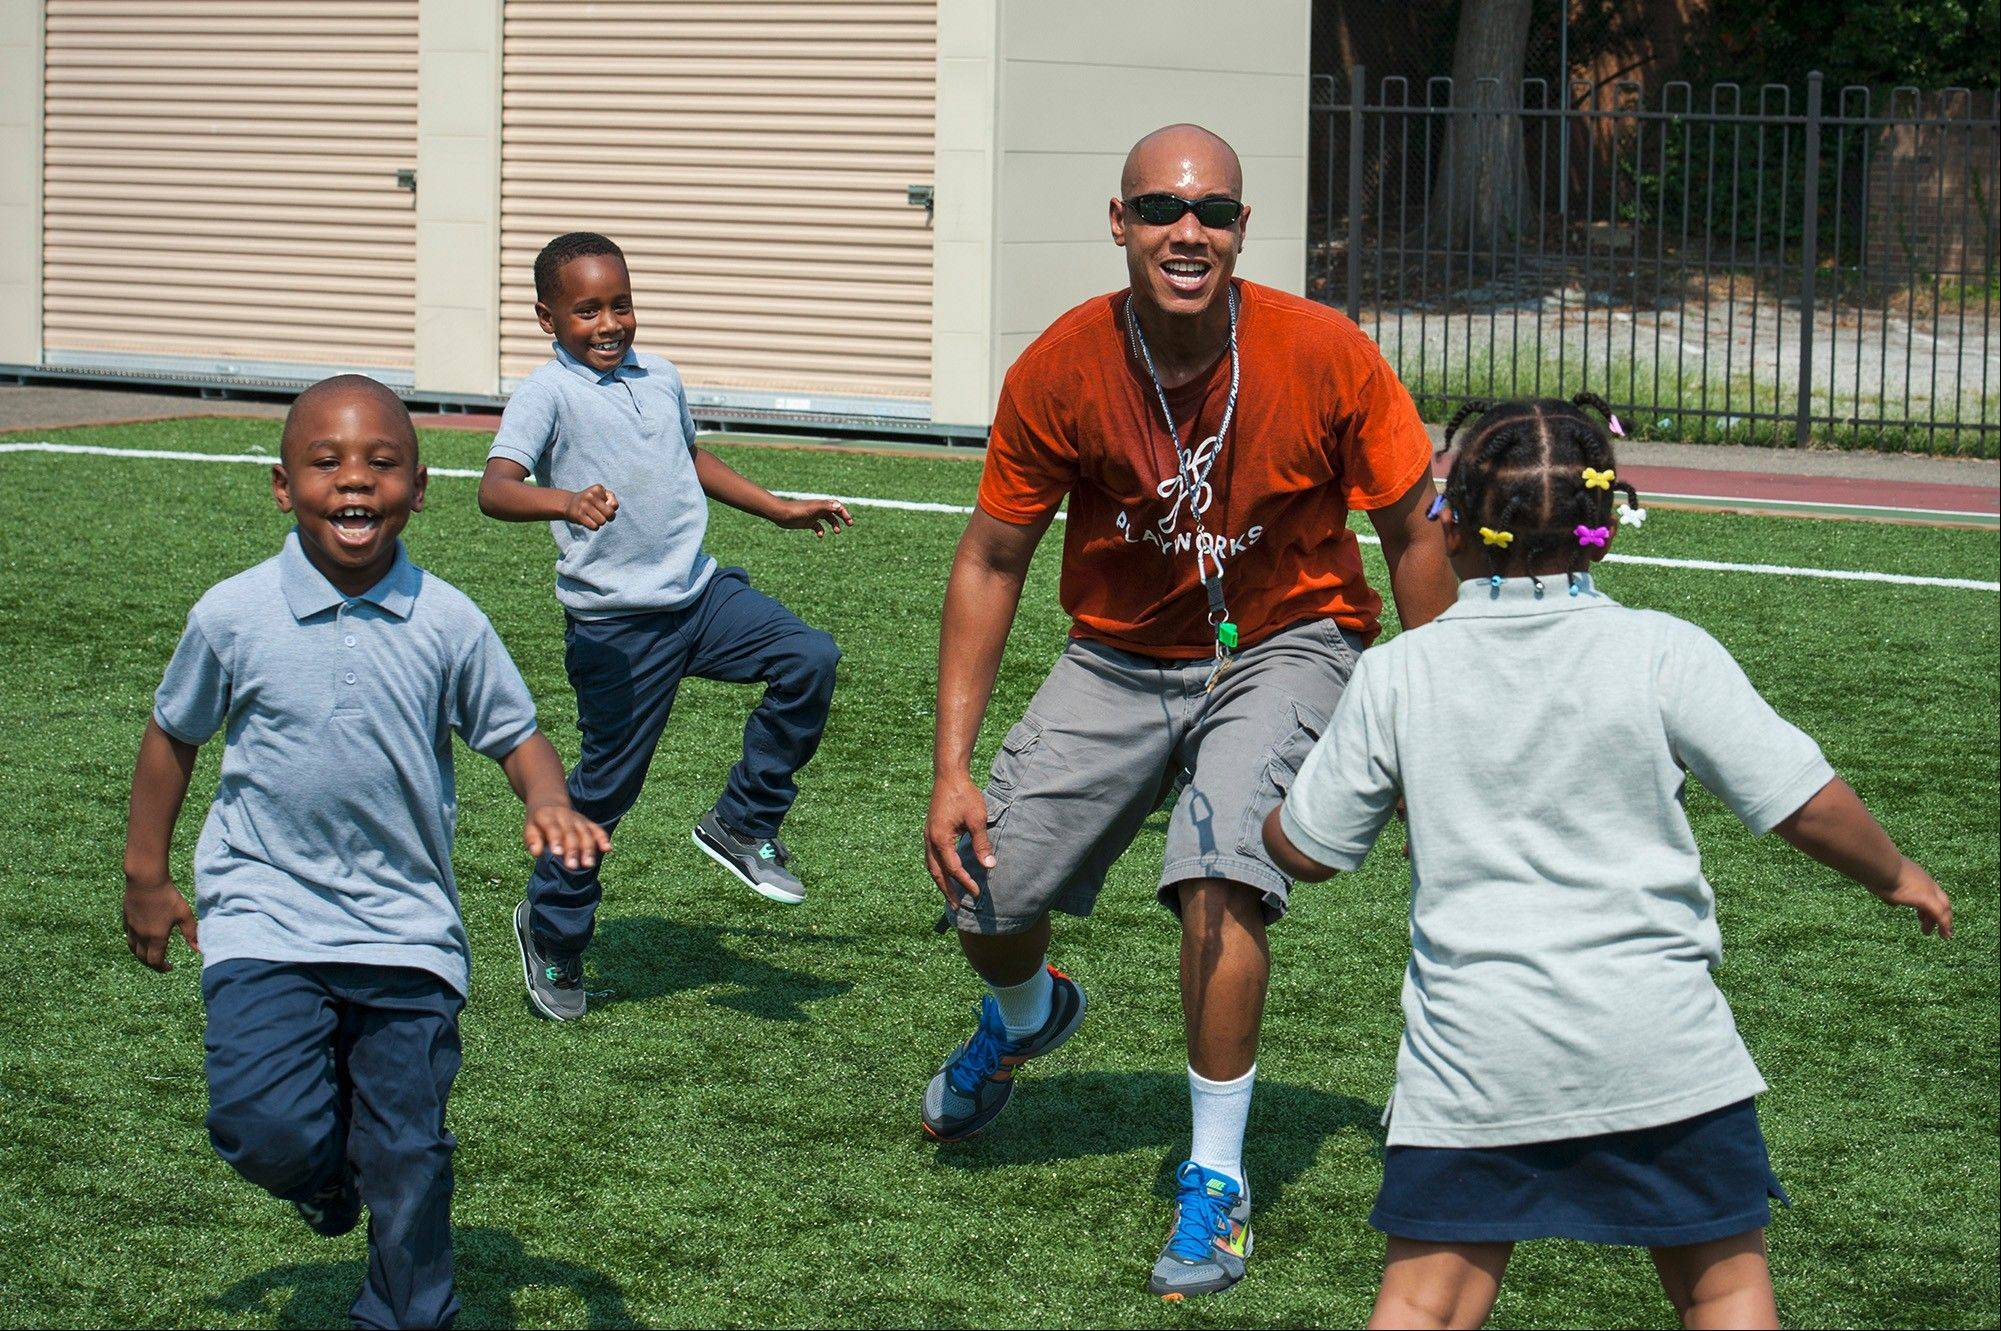 Katherine Frey/The Washington Post Playworks D.C. coach Leevon Floyd plays with first-graders Keon Hopkins, Tyrin Segar and Makayla Naper at Amidon-Bowen Elementary School in Washington. A nonprofit organization that started in Oakland, Calif., Playworks believes recess can teach kids conflict resolution and other life skills.